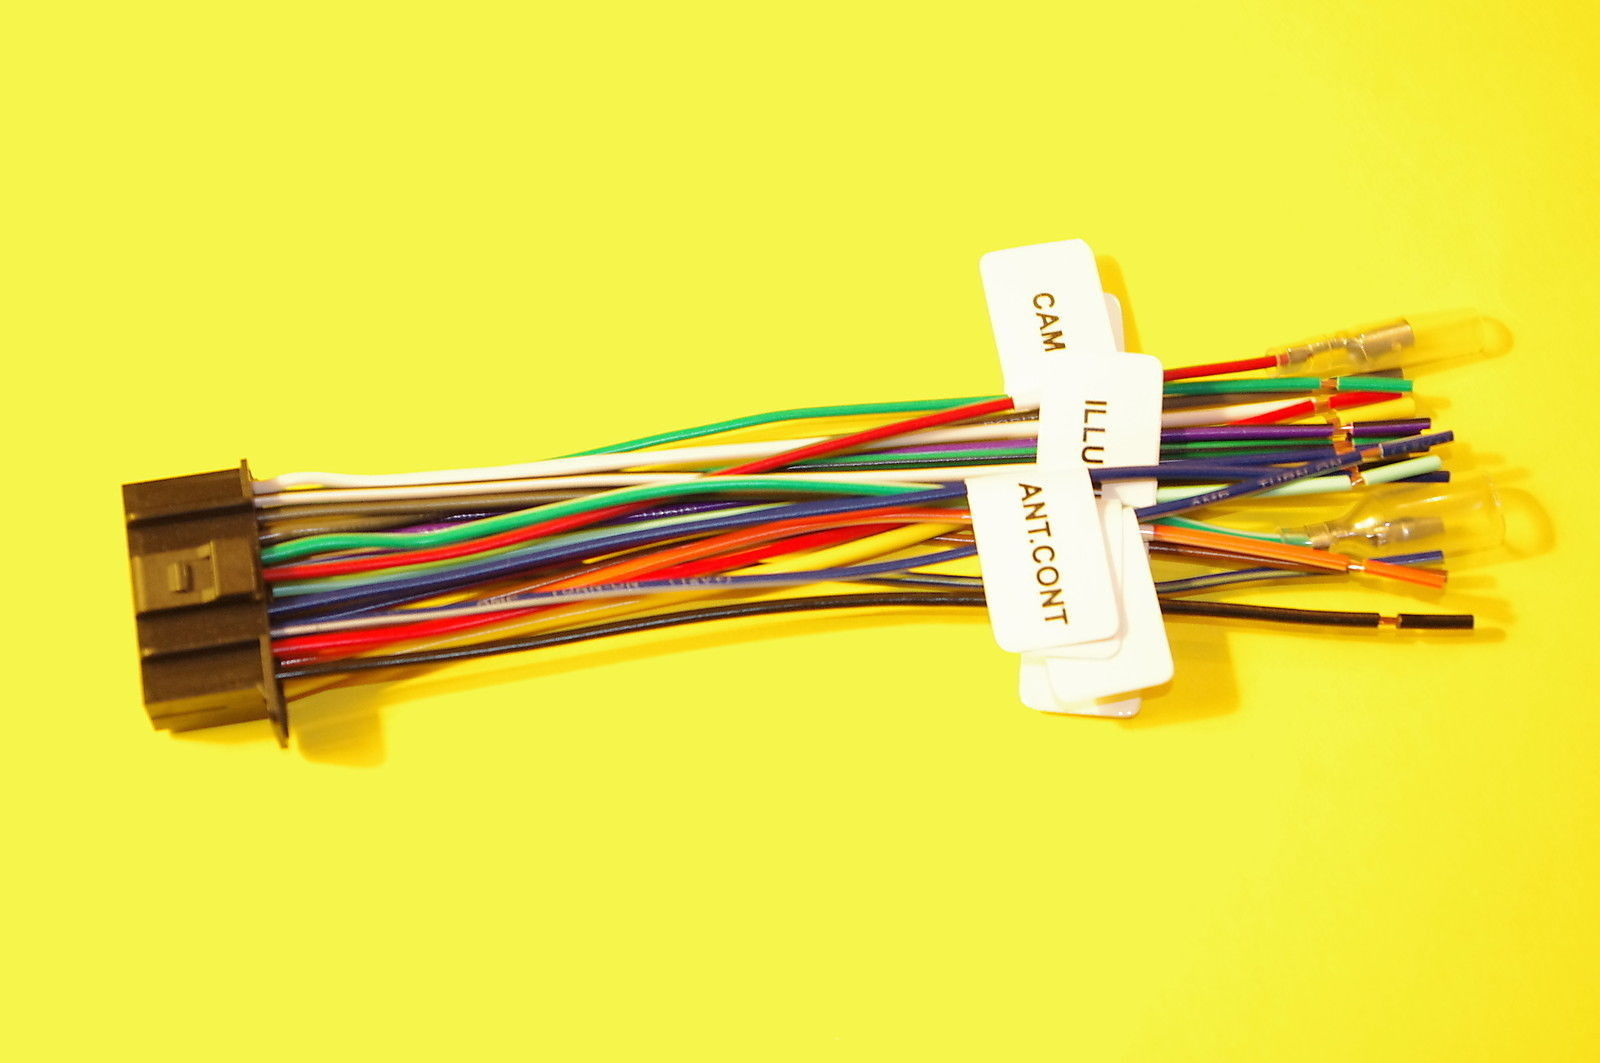 Kenwood Wiring Harness P Cont Electrical Diagrams Ddx512 Wire For Ddx9705s Ddx9905s And 50 Similar Items Power Supply